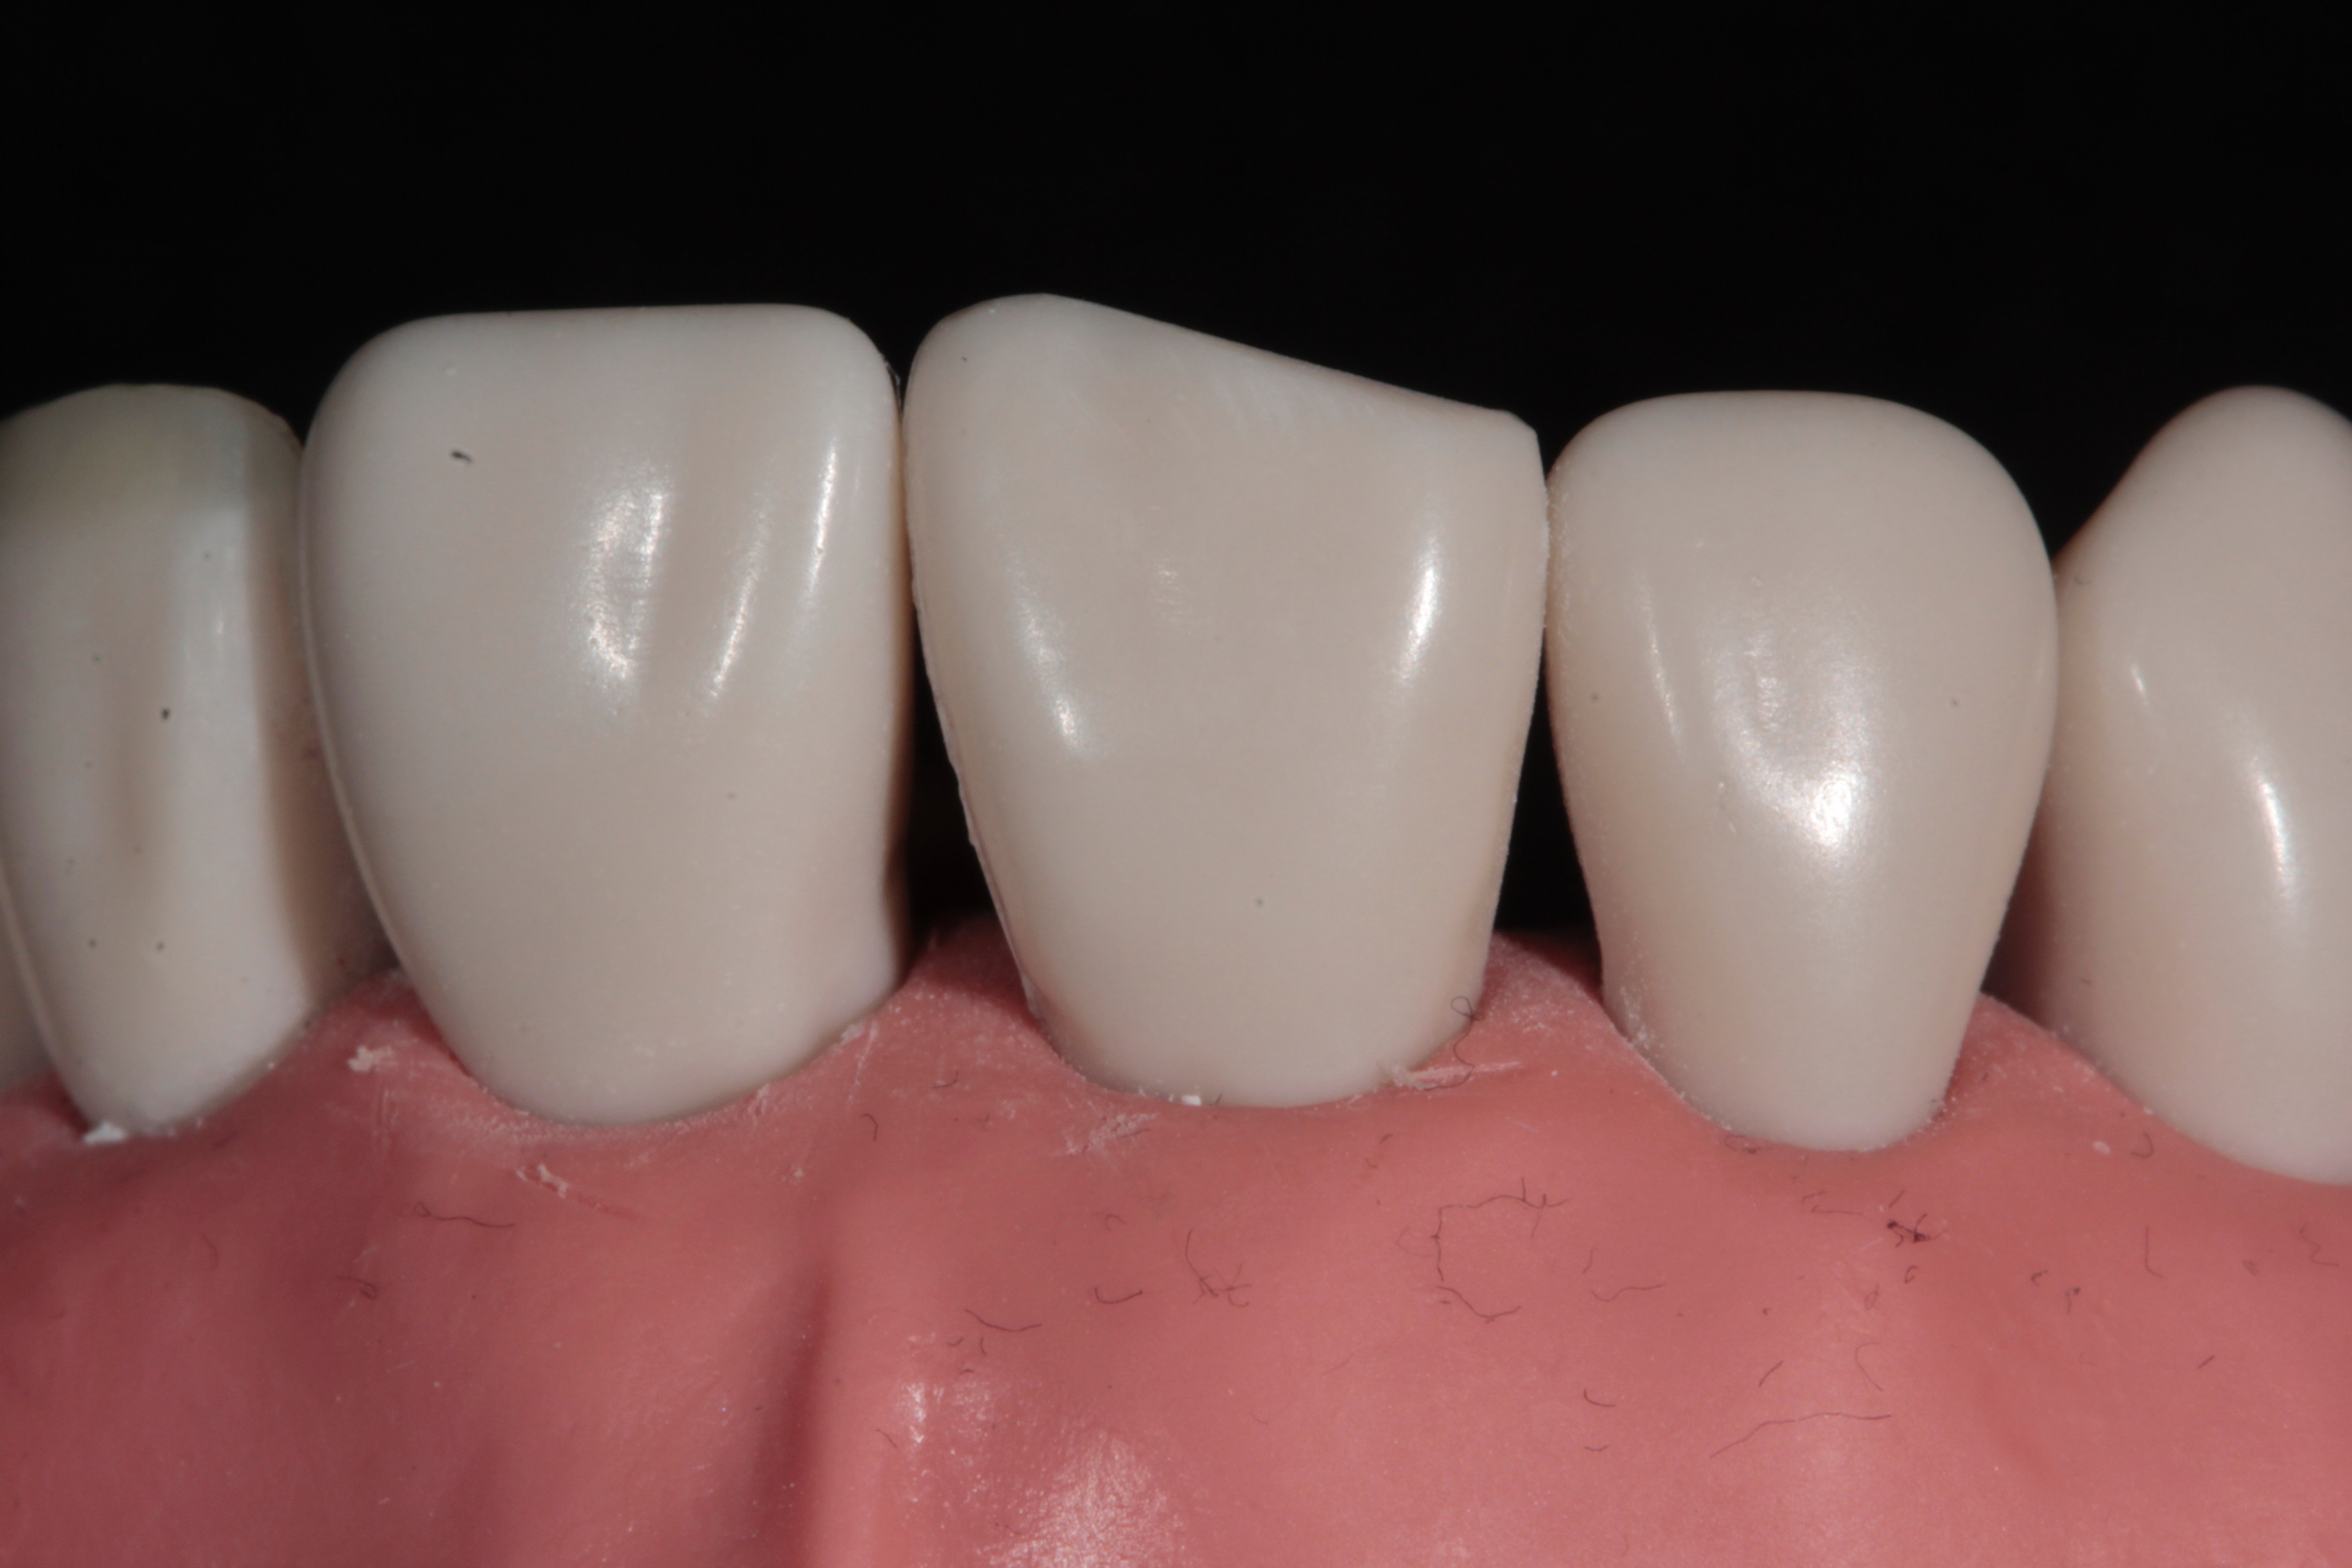 Tif Qureshi - Ortho restorative - case 2.1